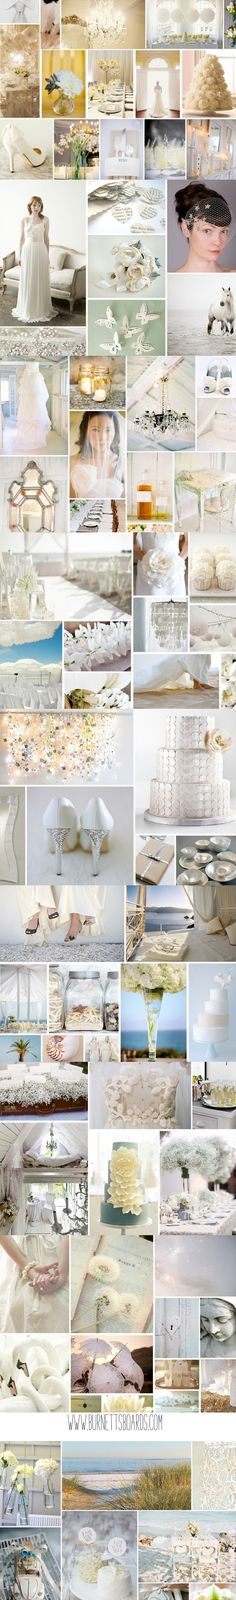 white wedding inspiration and ideas from www.burnettsboards.com